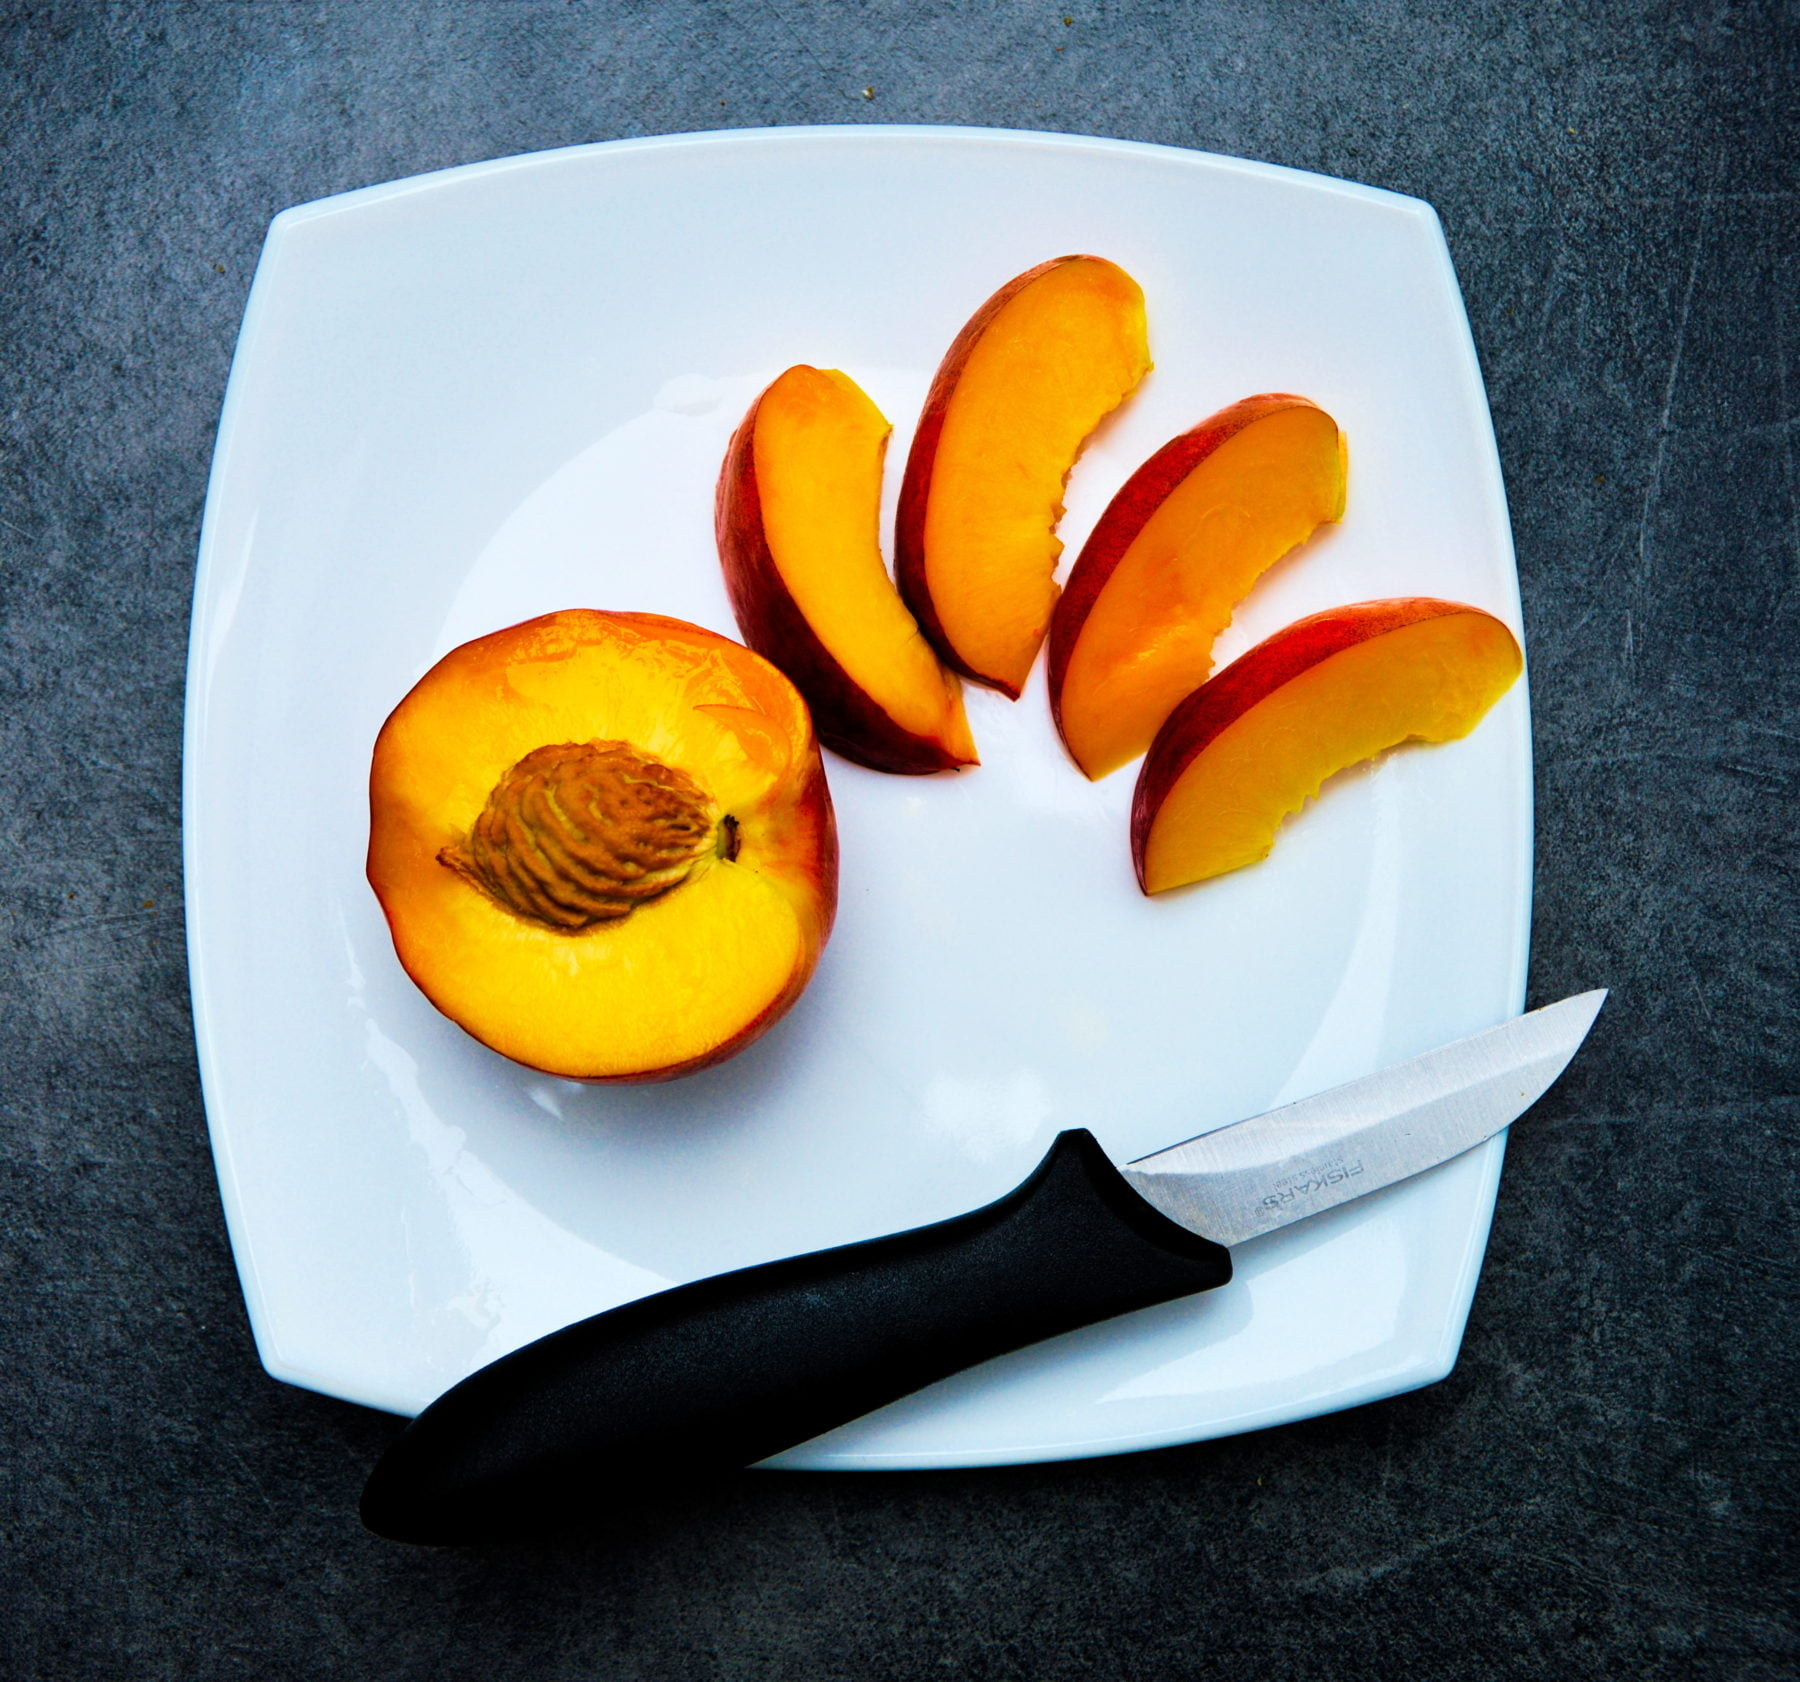 12 Days of Christmas Cooking: Gateau of Peaches with Mascarpone and Lemon Verbena